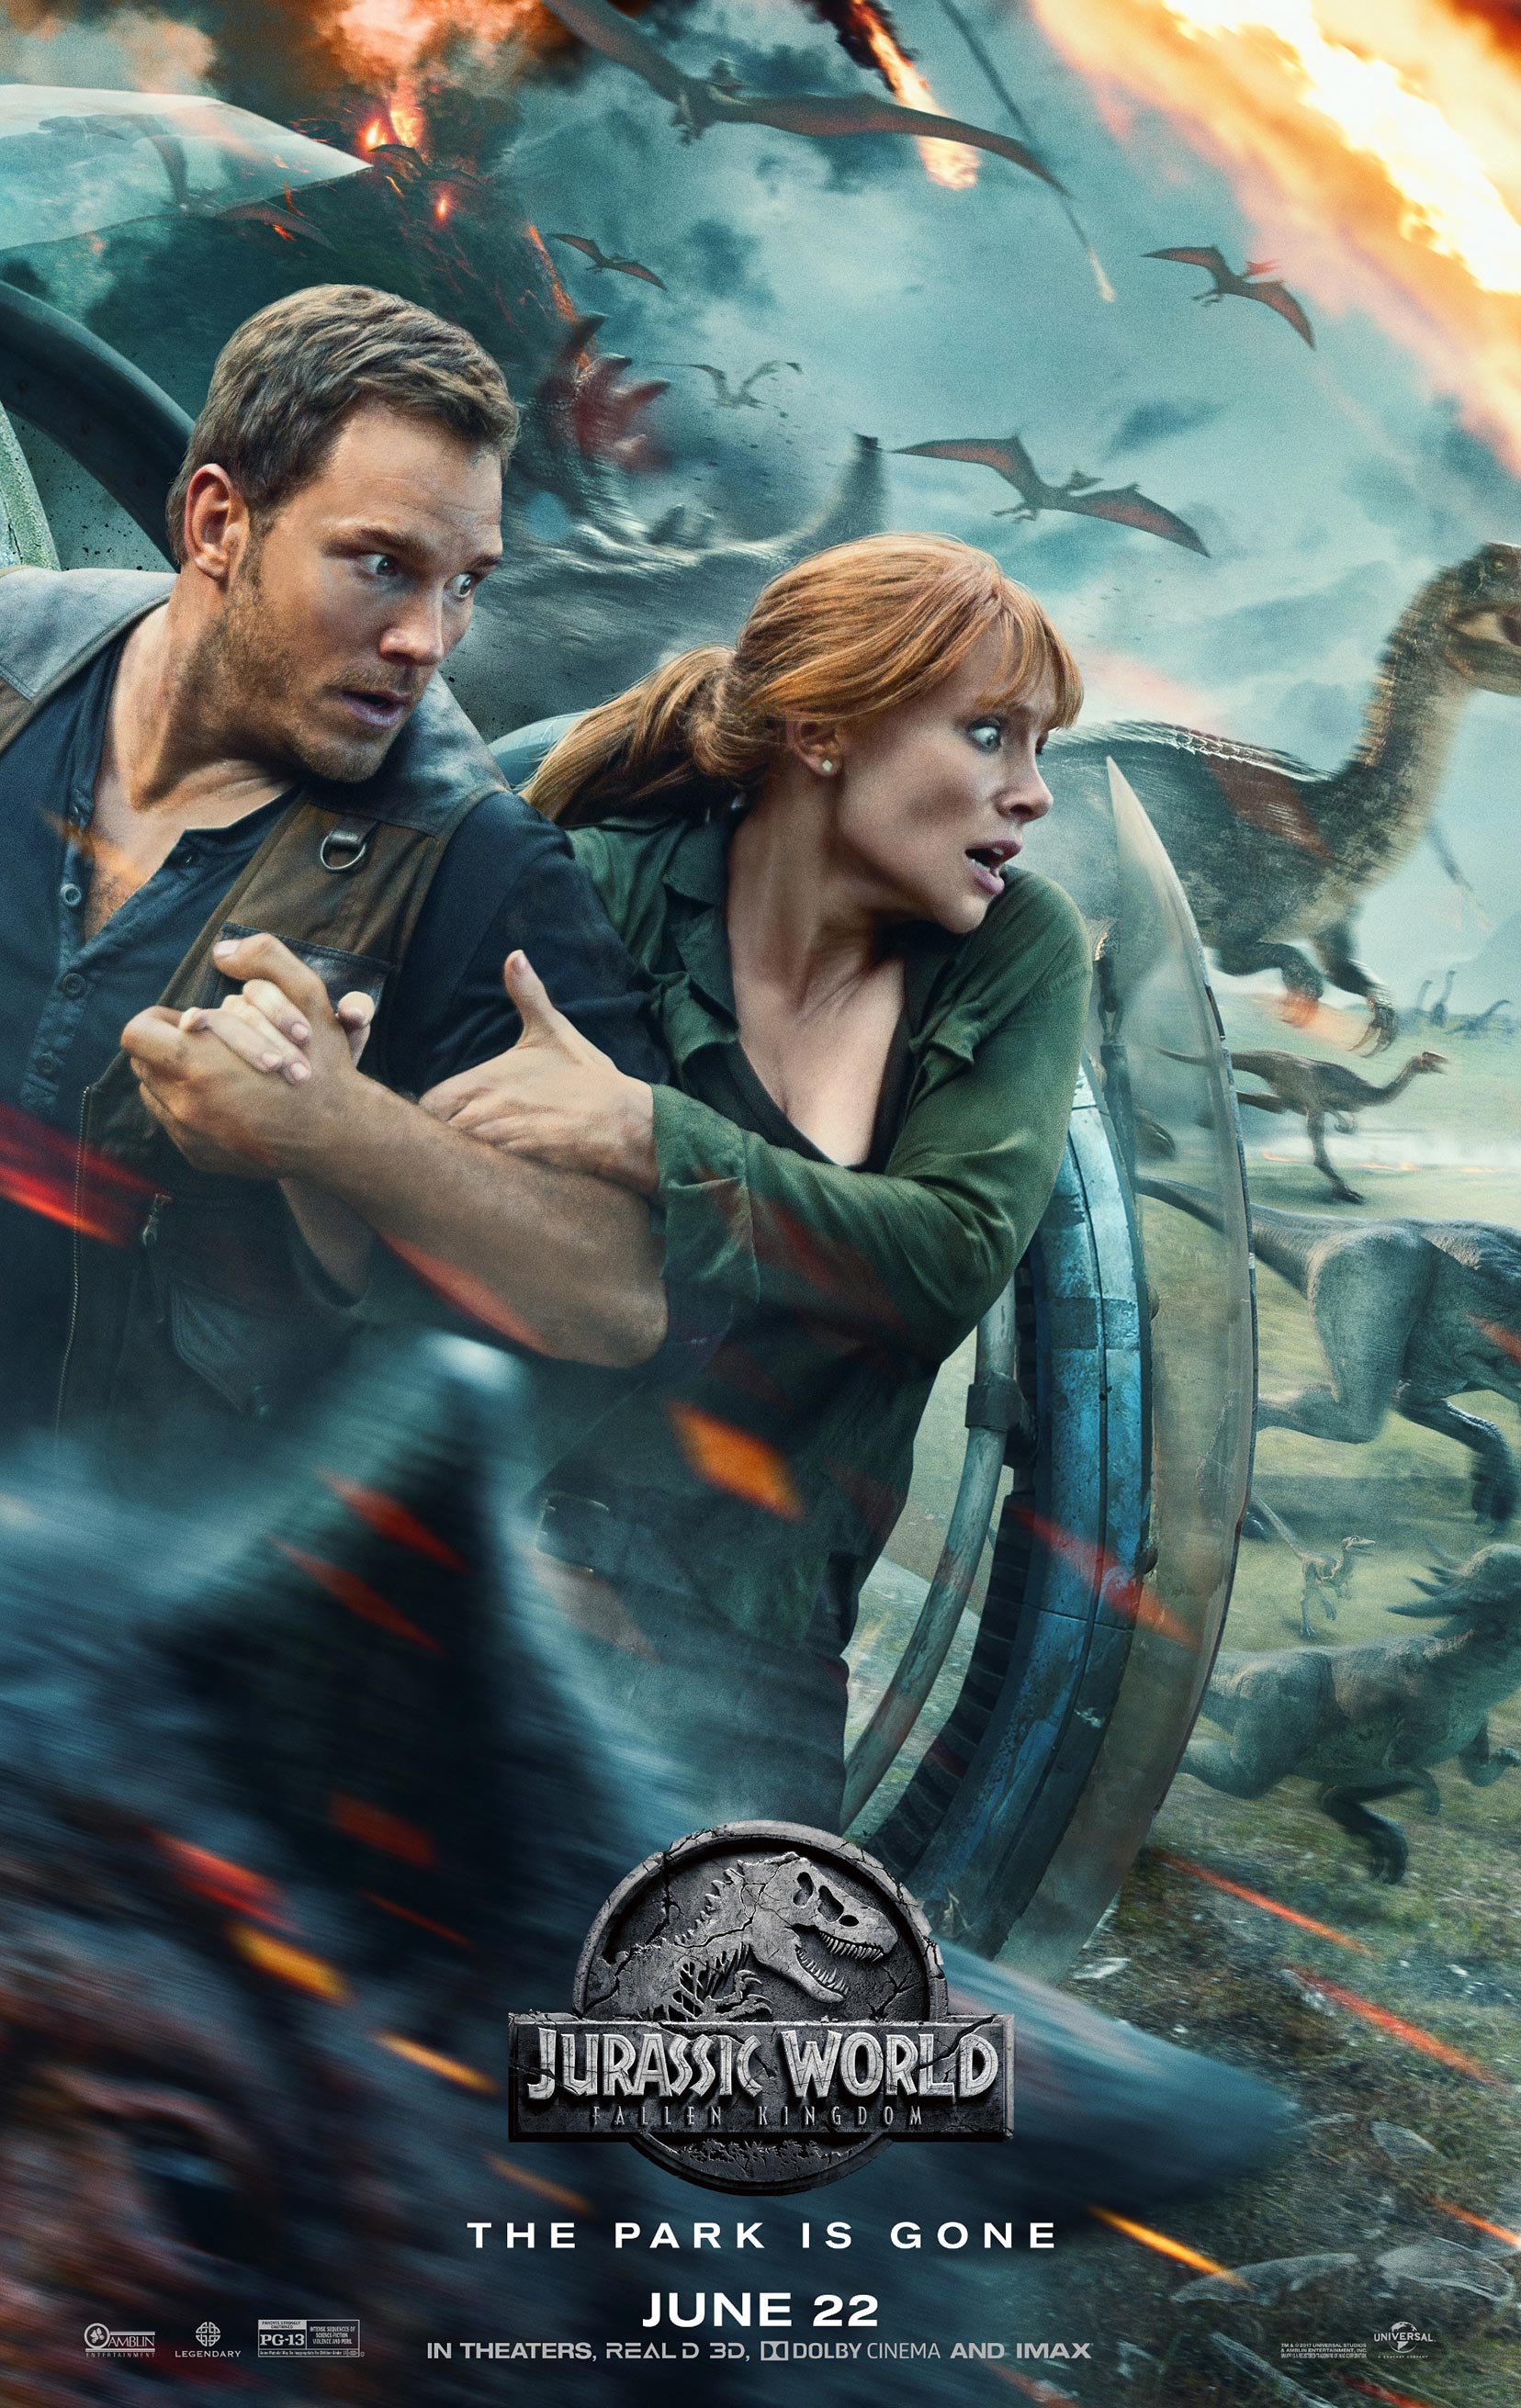 Jurassic World: Fallen Kingdom Poster #3